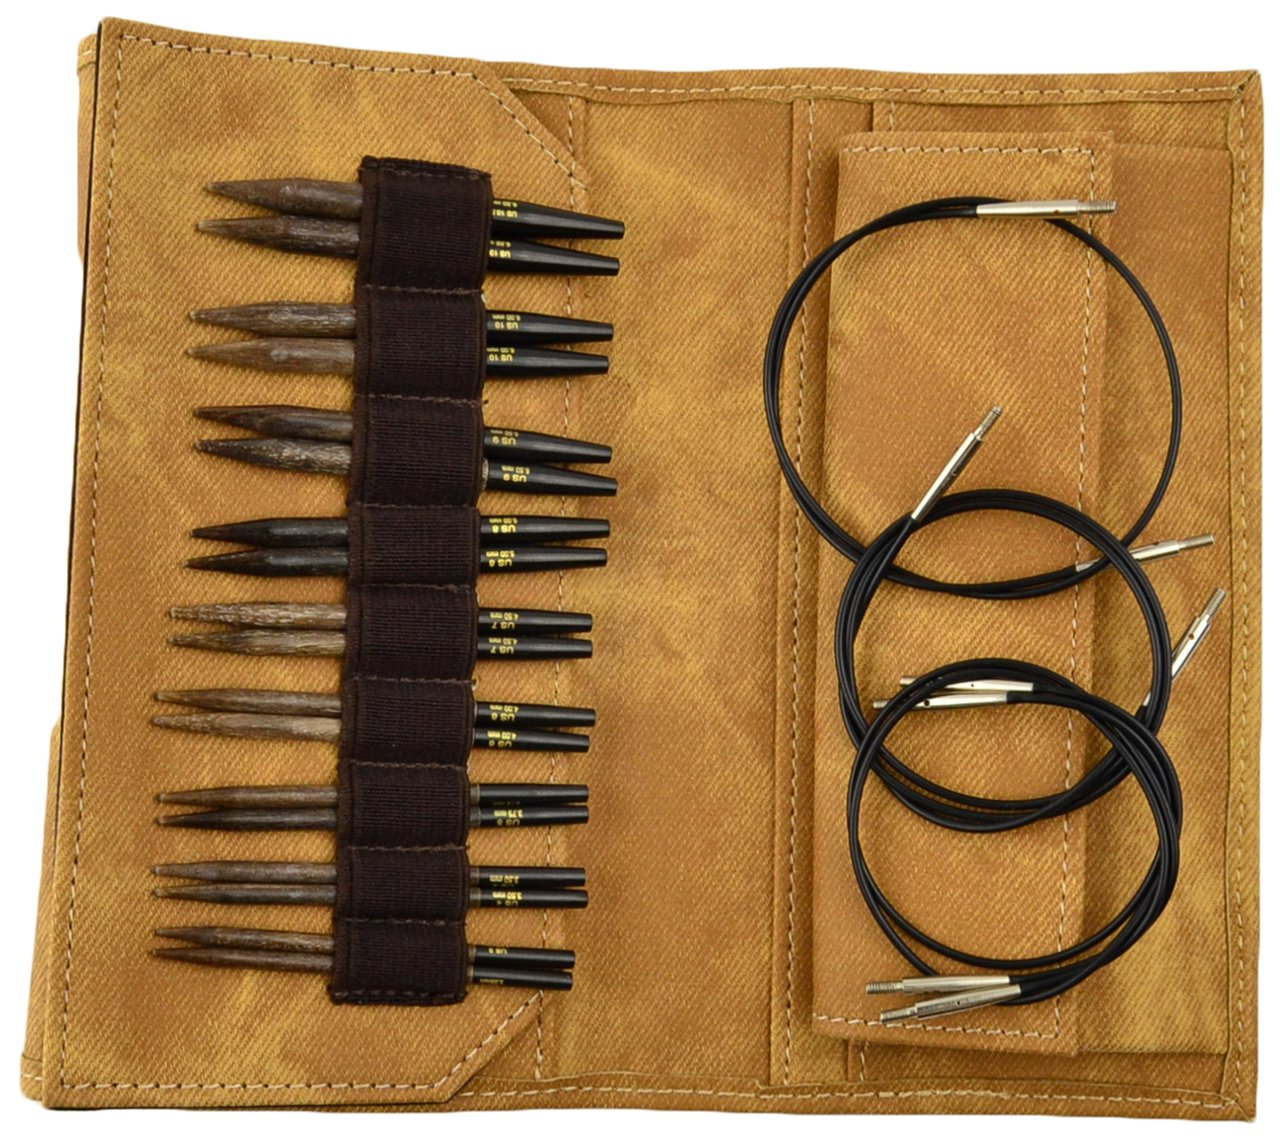 Lykke Short Tip Interchangeable Needle Set - Umber